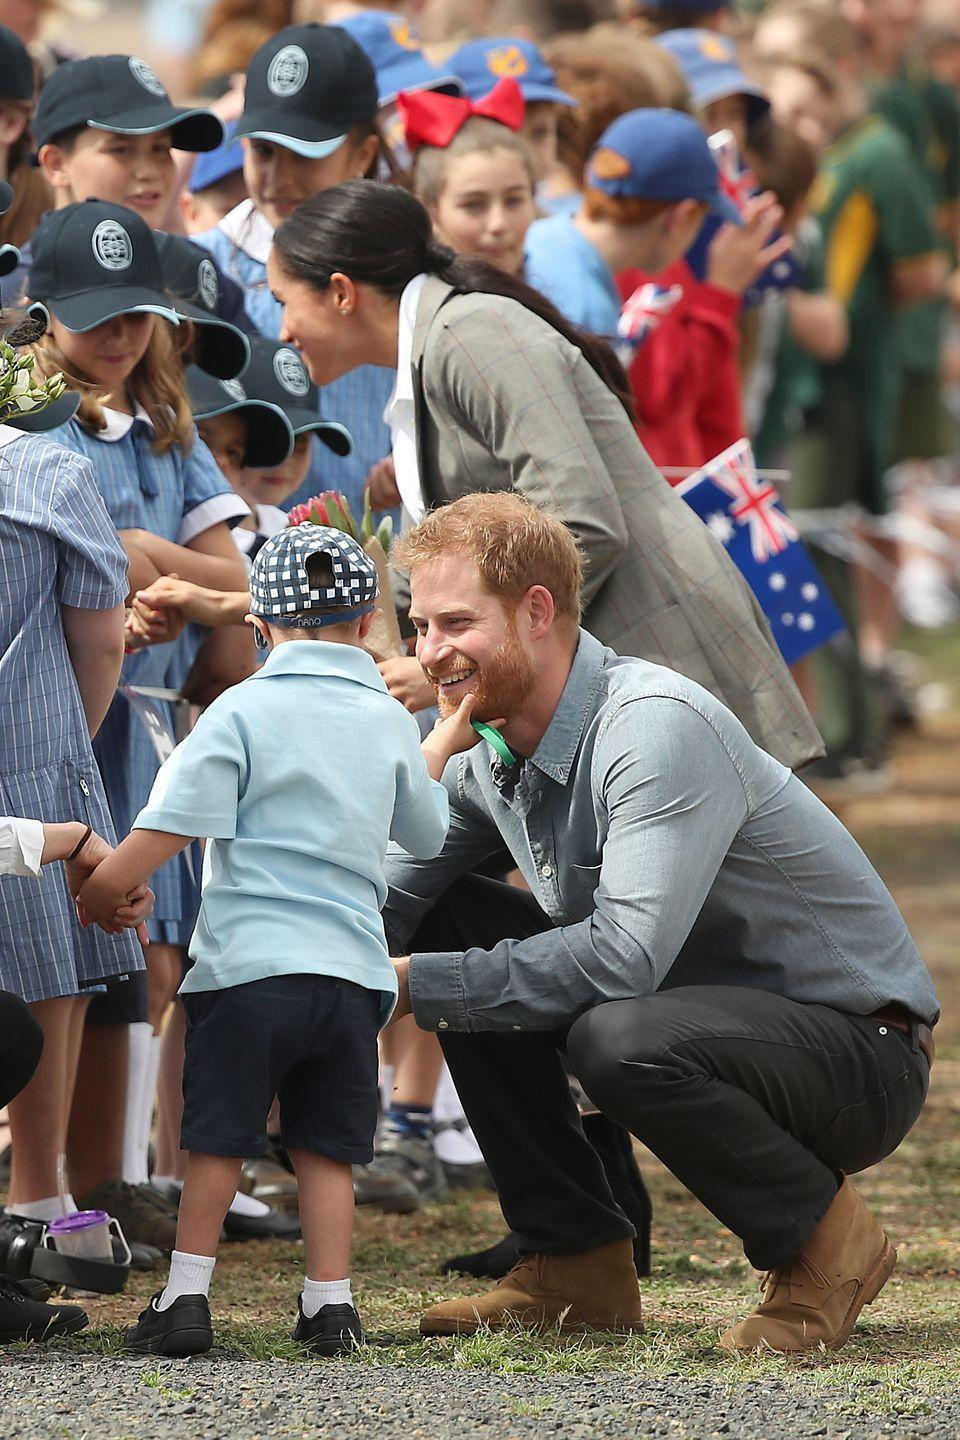 """<p>When Harry and Meghan visited Dubbo, little Luke stepped forwards to give Harry a hug and stroke his beard. His teacher <a href=""""https://www.goodhousekeeping.com/uk/lifestyle/a23860779/prince-harry-luke-jenkins-hug-dubbo-new-south-wales/"""" rel=""""nofollow noopener"""" target=""""_blank"""" data-ylk=""""slk:reportedly said that as Luke's favourite person is Santa Claus"""" class=""""link rapid-noclick-resp"""">reportedly said that as Luke's favourite person is Santa Claus</a>, who has a beard, he rubbed Harry's </p>"""